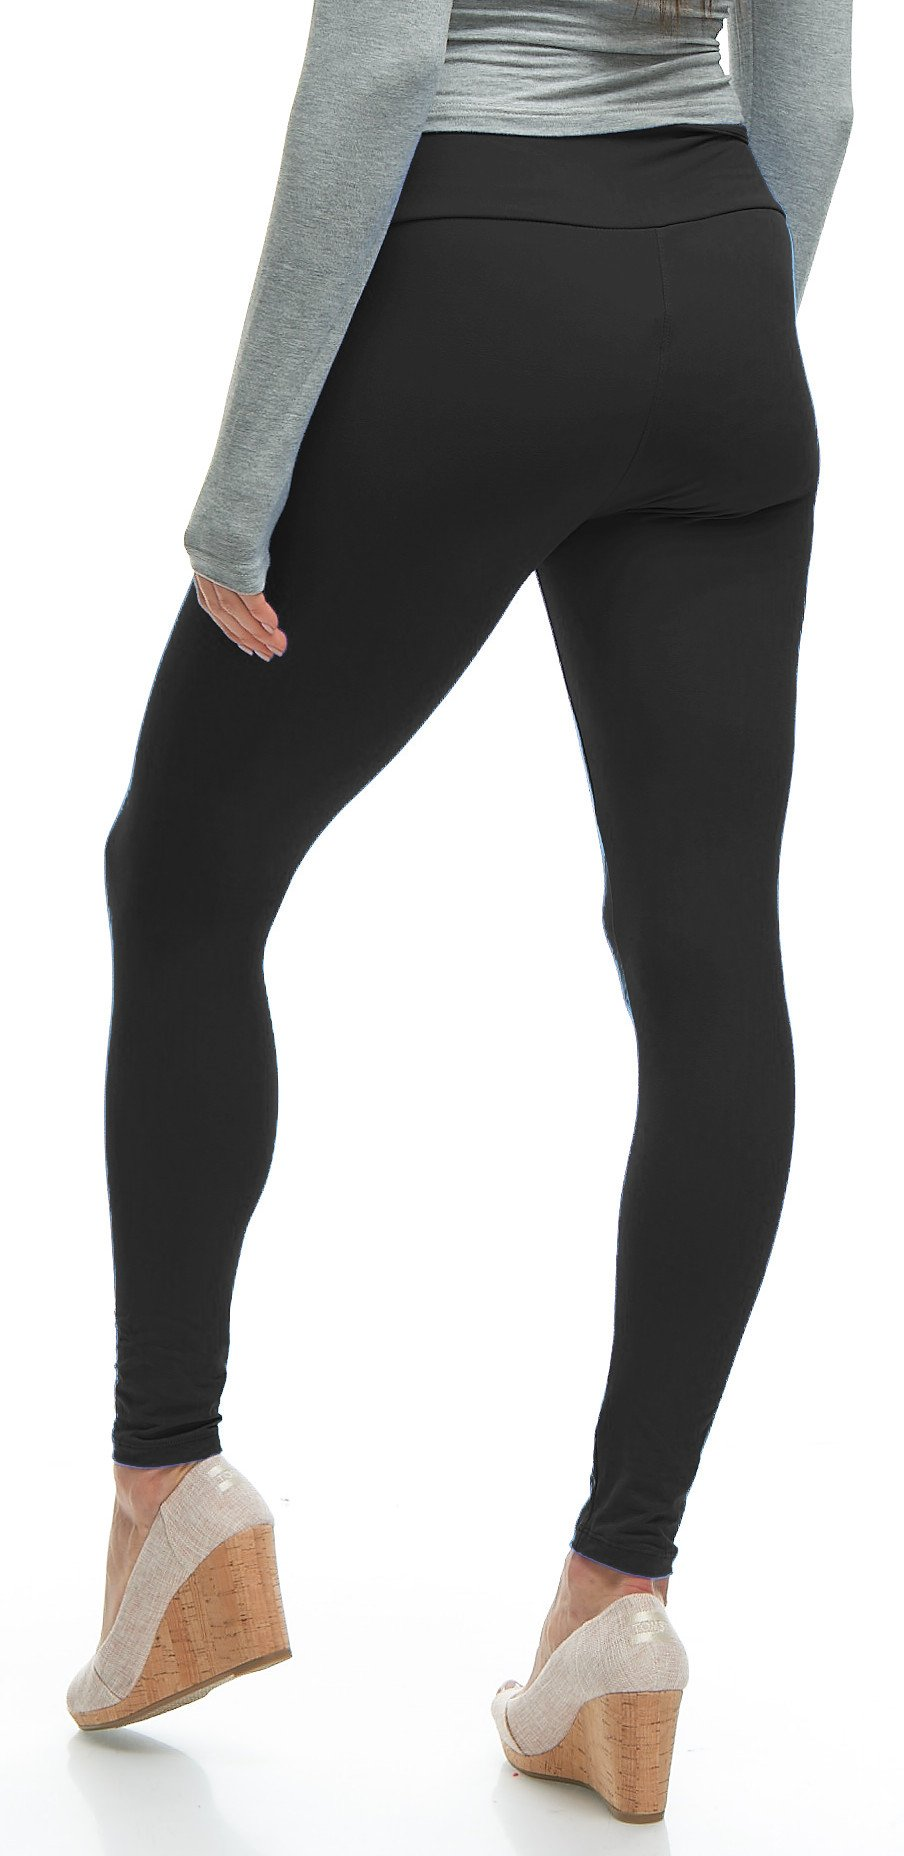 LMB Yoga Leggings Buttery Soft Material - Variety of Colors - Black by LMB (Image #6)